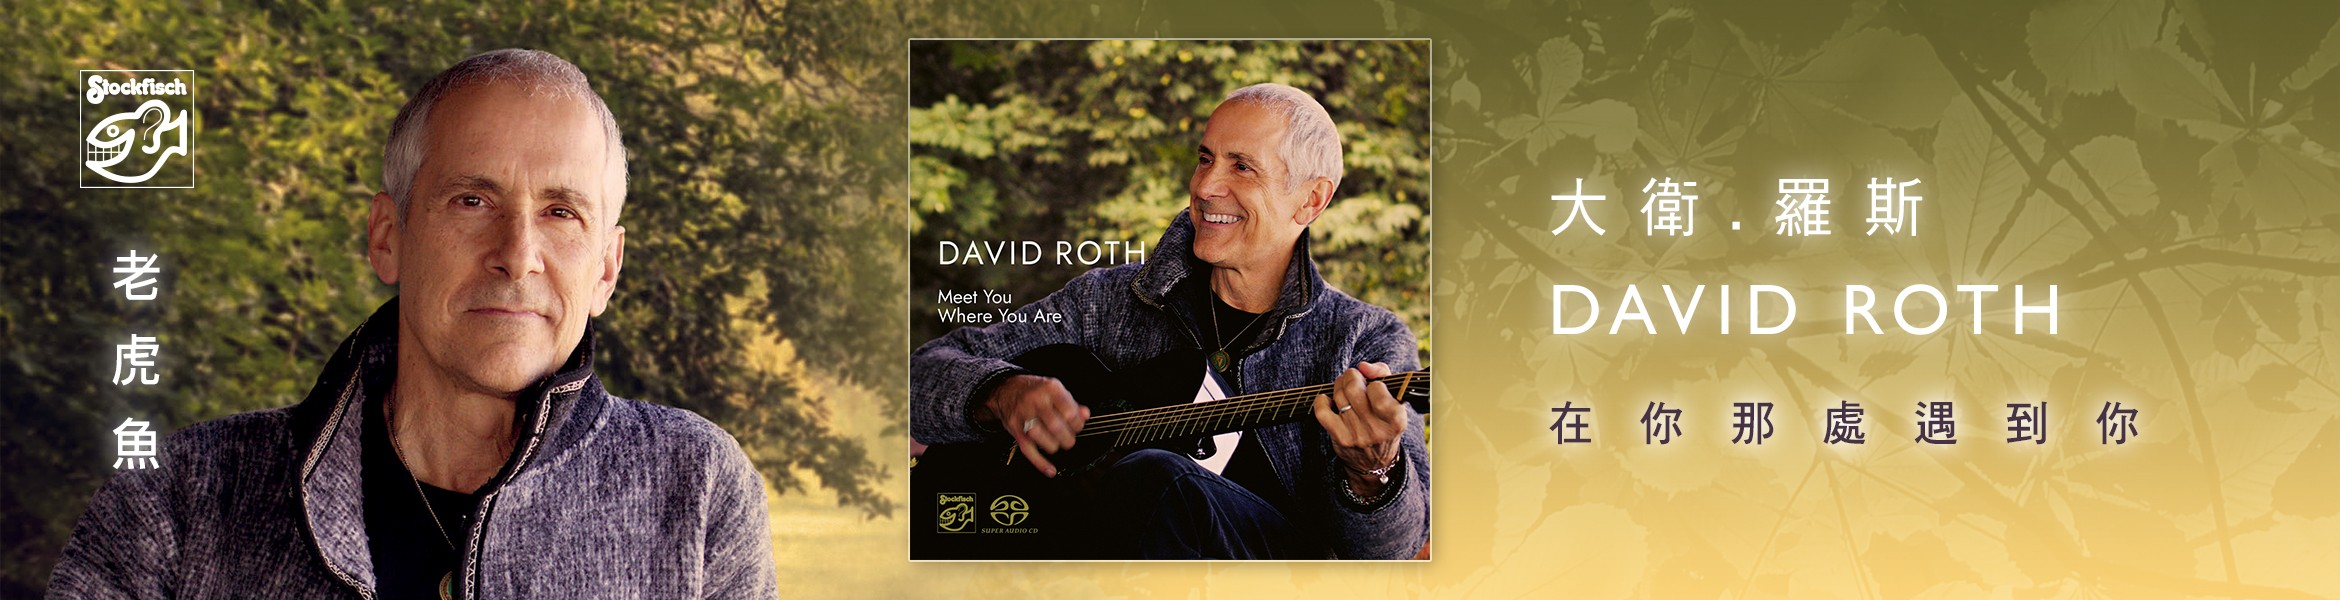 2020-03 Stockfisch - David Roth